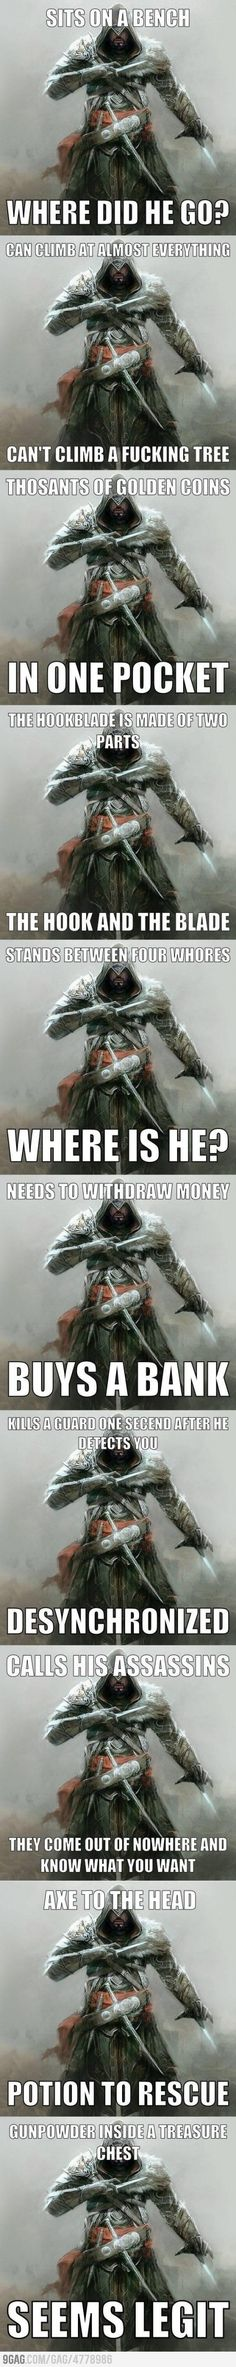 One does not simply finds logic in AC...